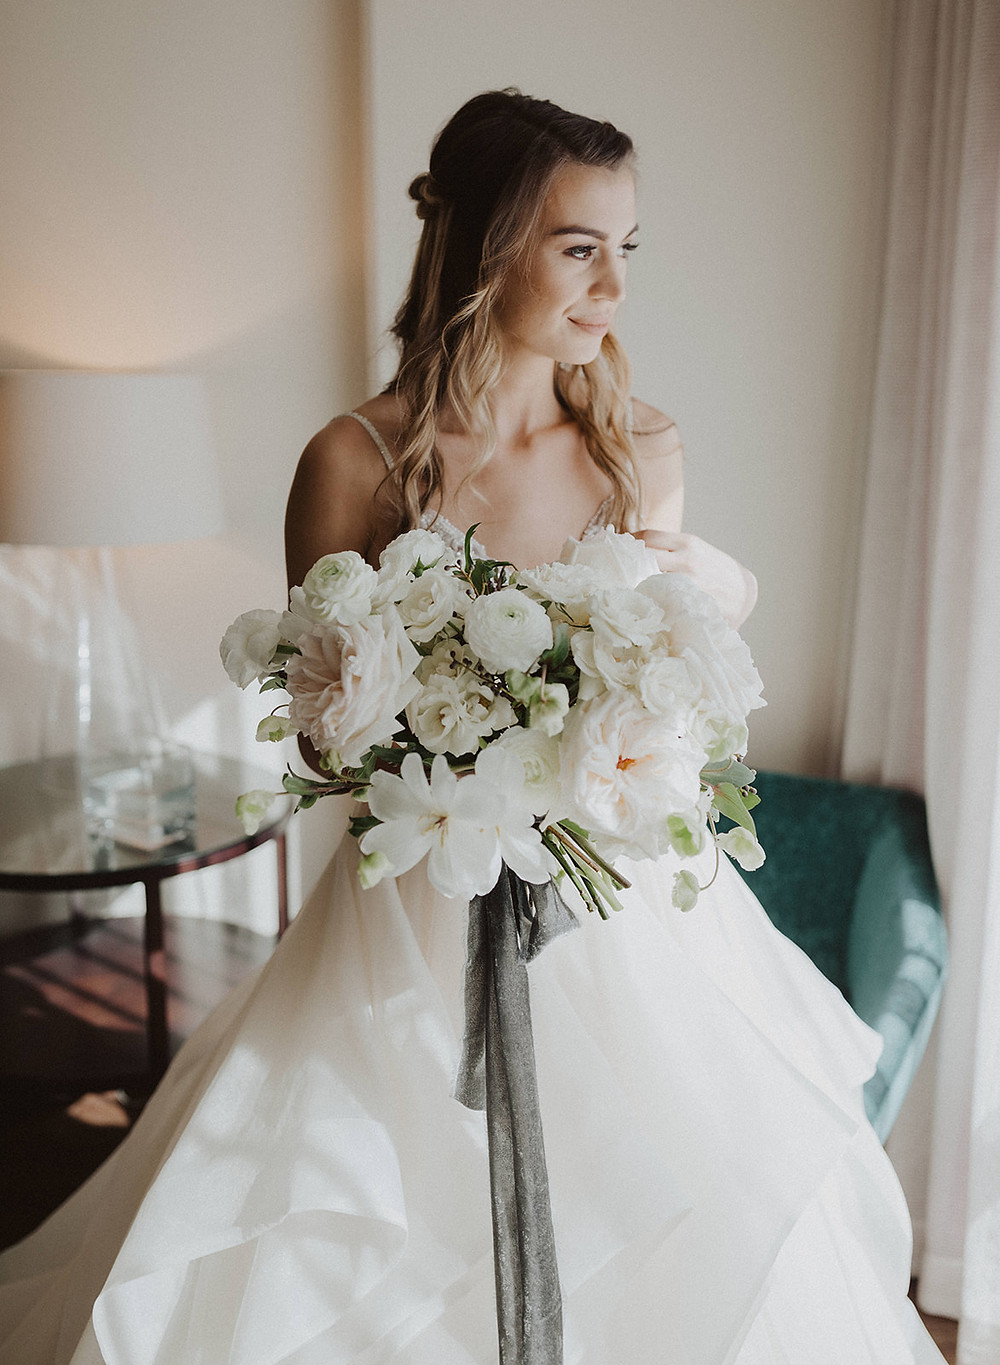 Elegant white, blush and black bouquet for a Black Tie wedding in downtown San Diego at The Ultimate Skybox, filled with garden roses, tulips, ranunculus and hellebores, made by San Diego Wedding Florist, Le Champagne Projects. #blushbouquet #bridalbouquet #blacktieweddingflowers #fallweddingflowers #autumnbouquet #whitebridalbouquet #elegantbouquet #gardenrosebouquet #sandiegoweddingflorist #sandiegoflorist